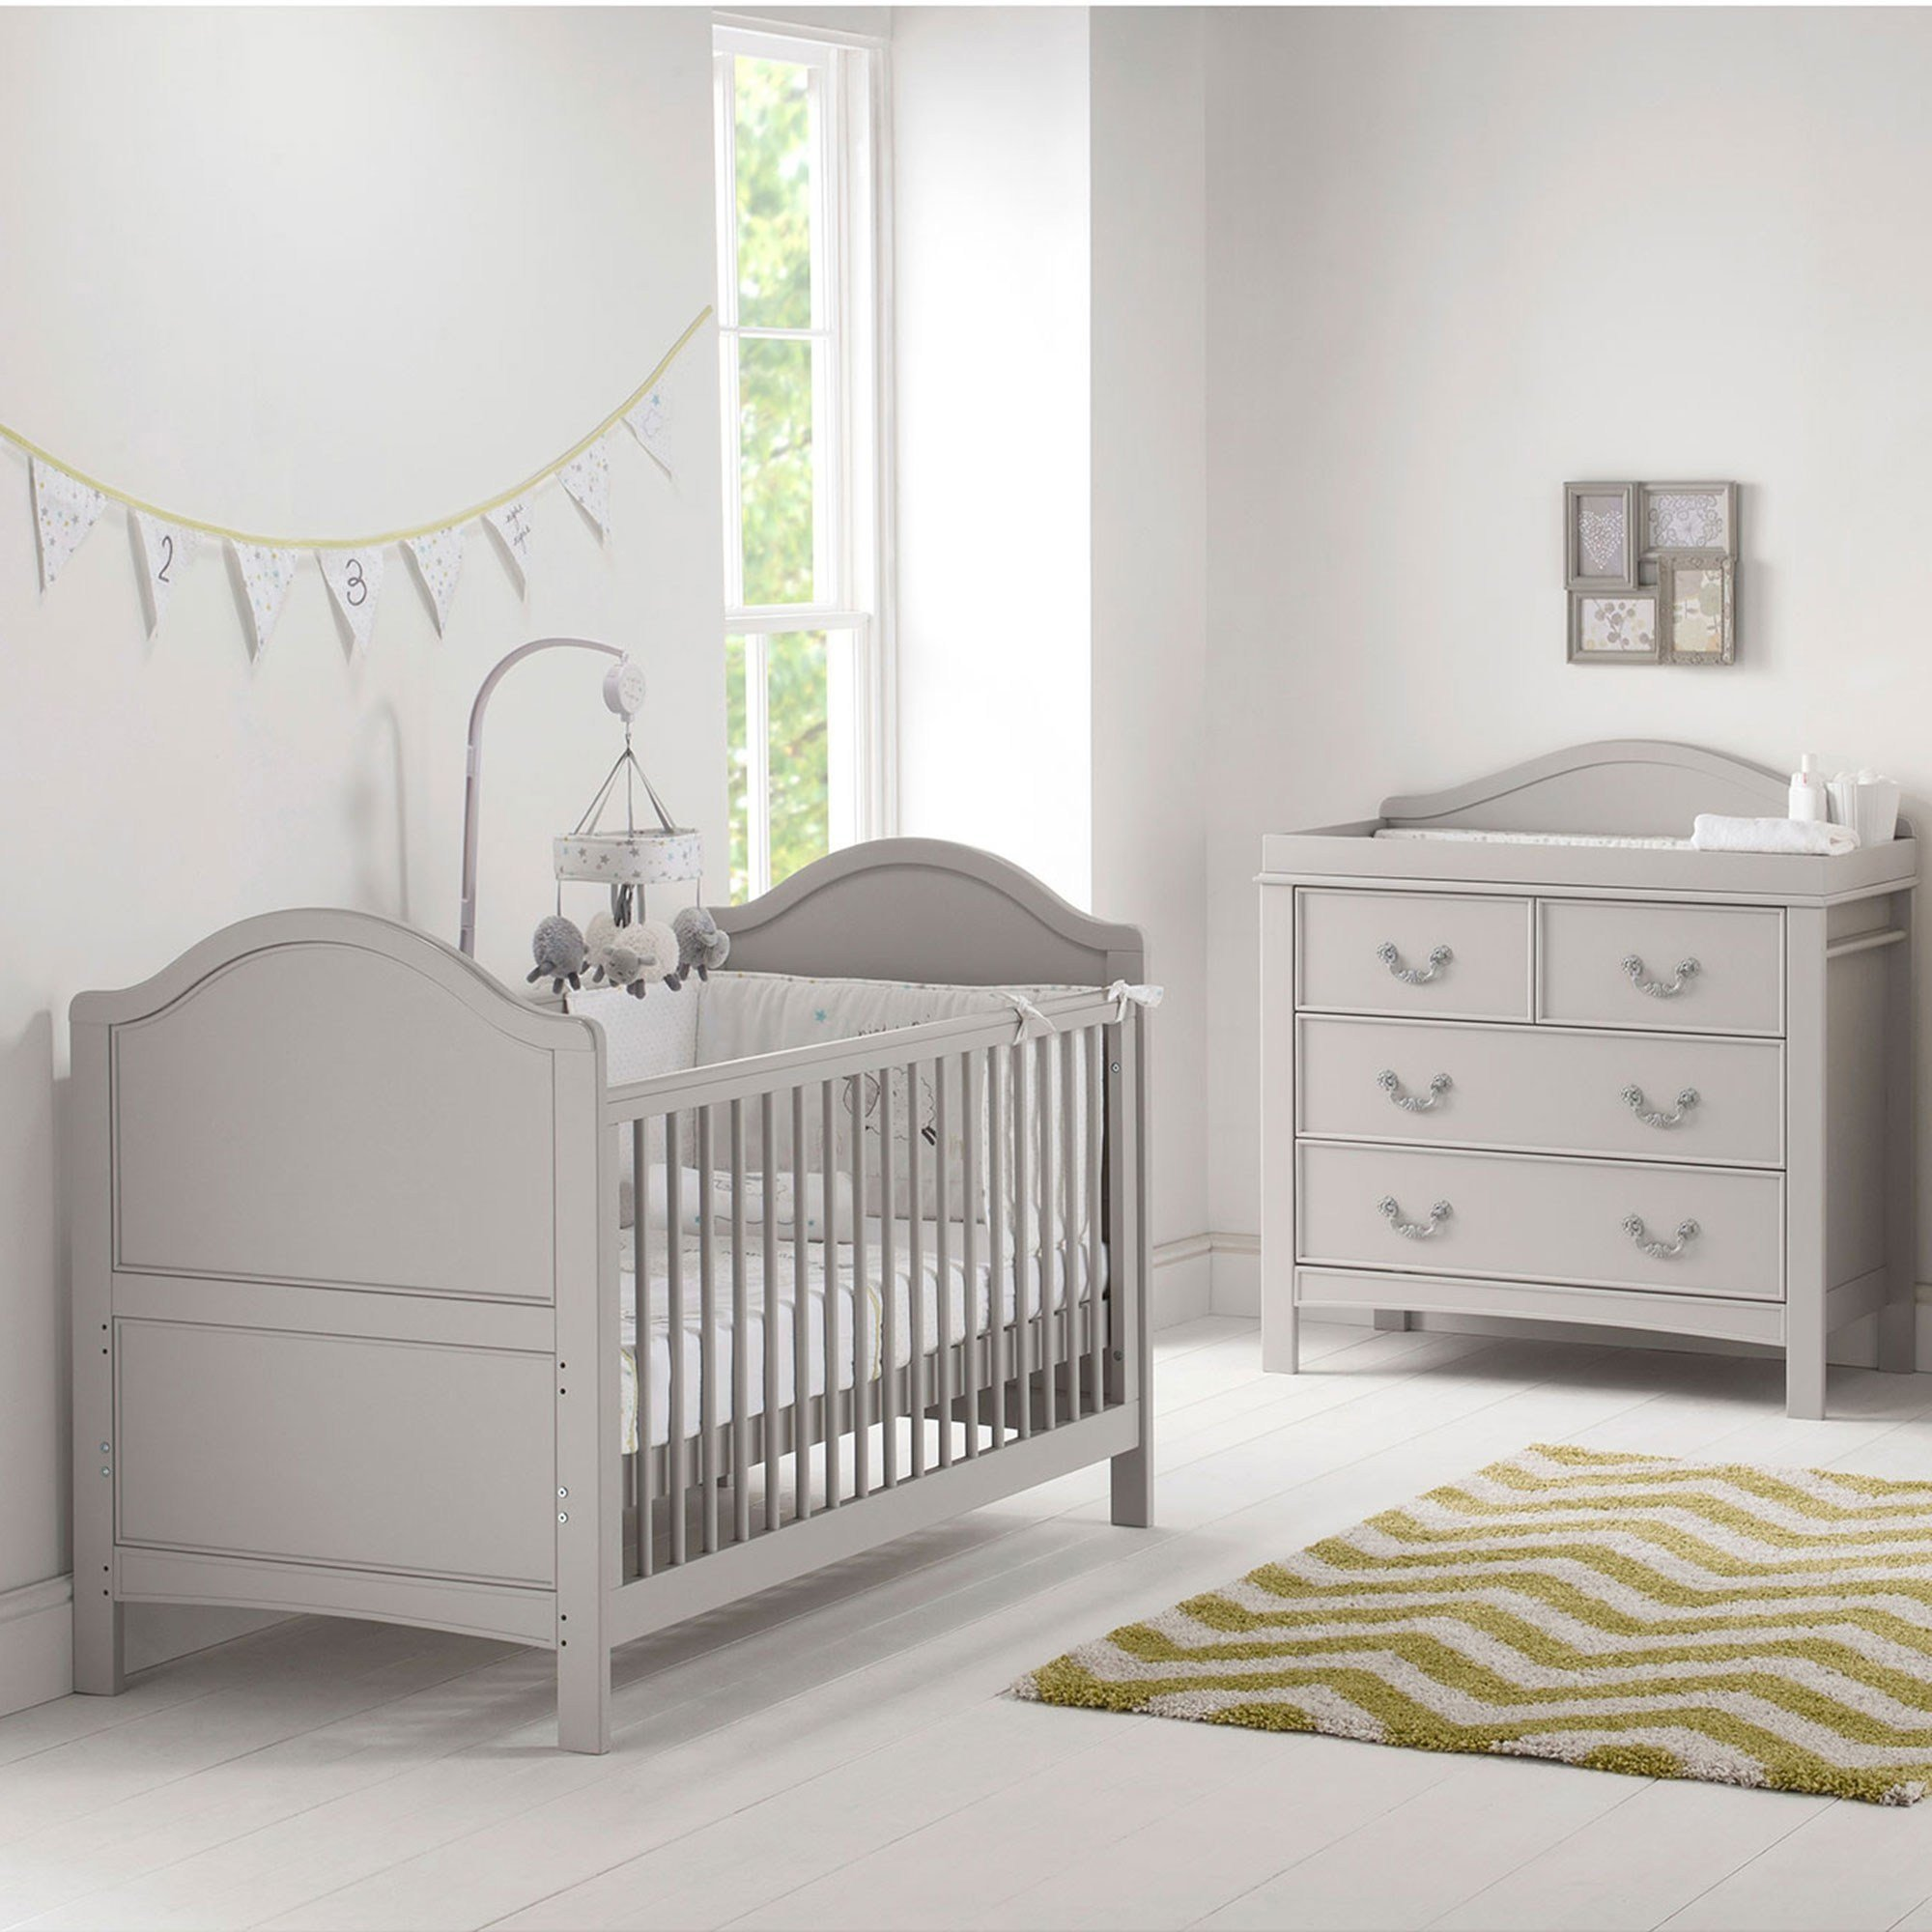 Best East Coast Nursery Furniture Cot Bed Dresser Toulouse 2 With Pictures